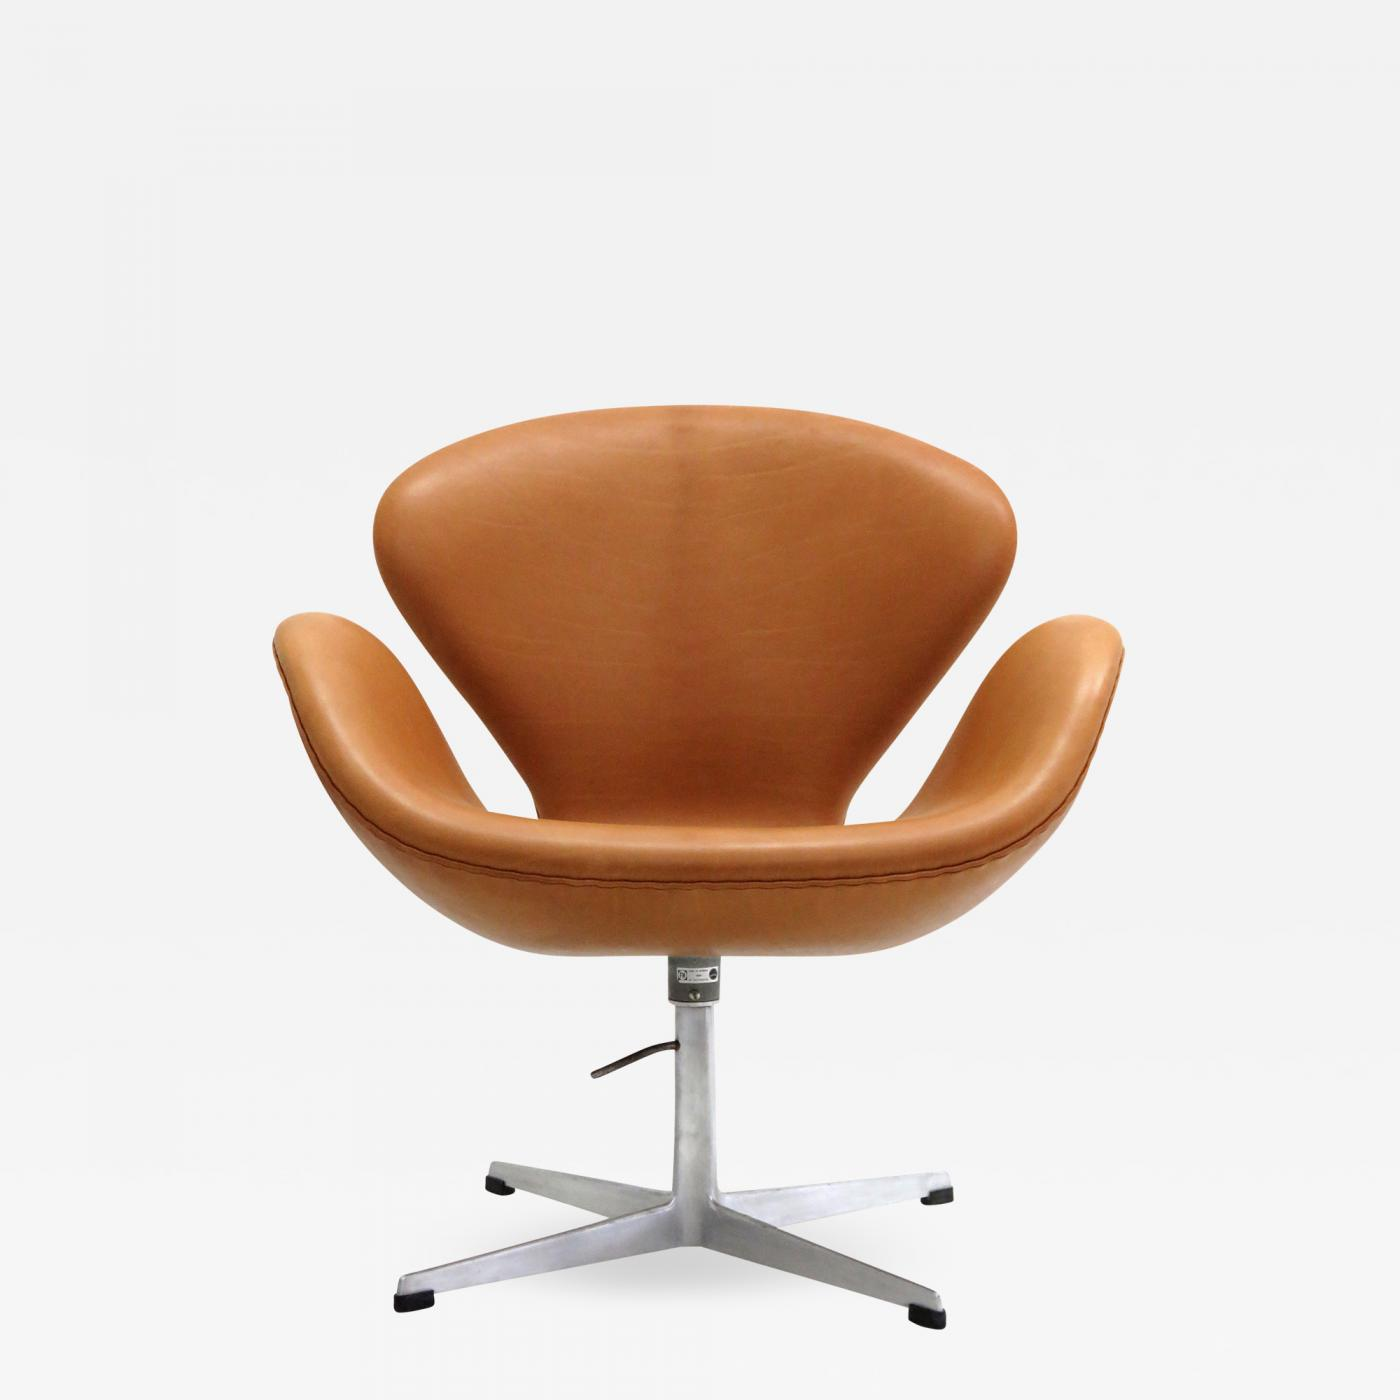 Fritz Hansen Chairs Arne Jacobsen Swan Chair Model 3320 By Arne Jacobsen For Fritz Hansen